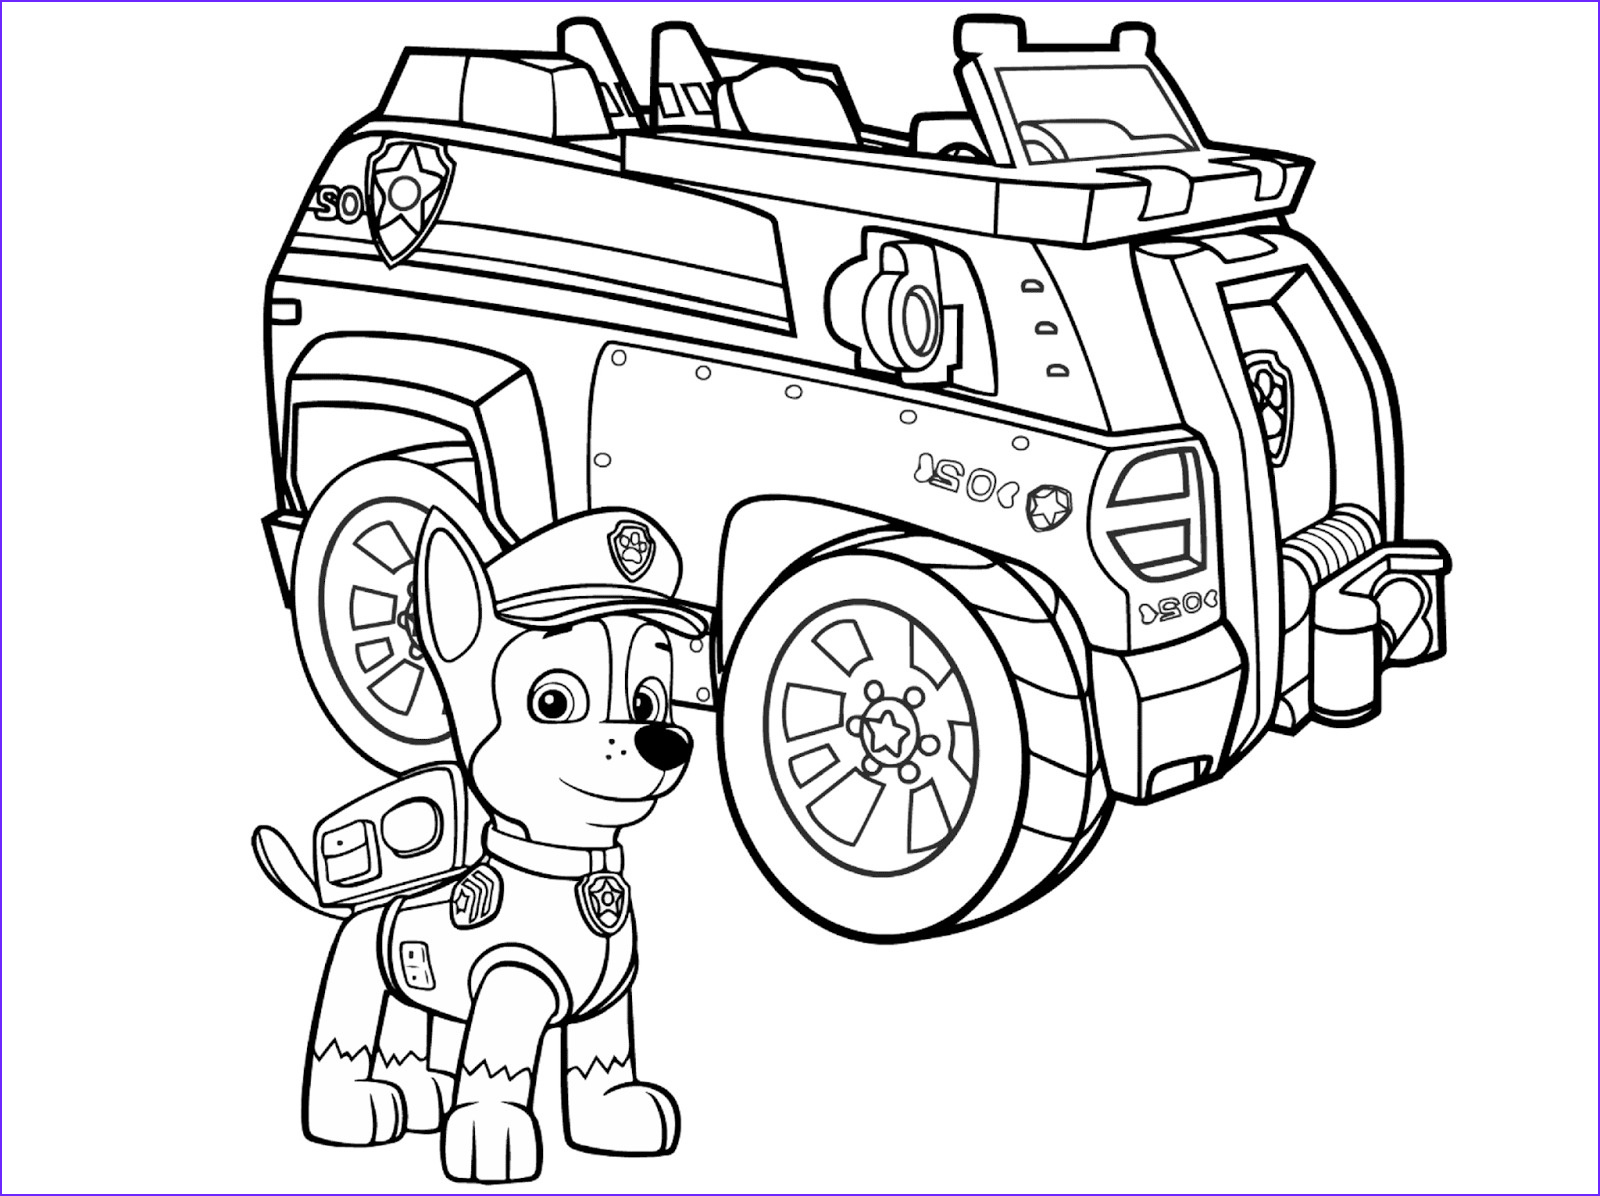 nickelodeon paw patrol chase coloring pages sketch templates